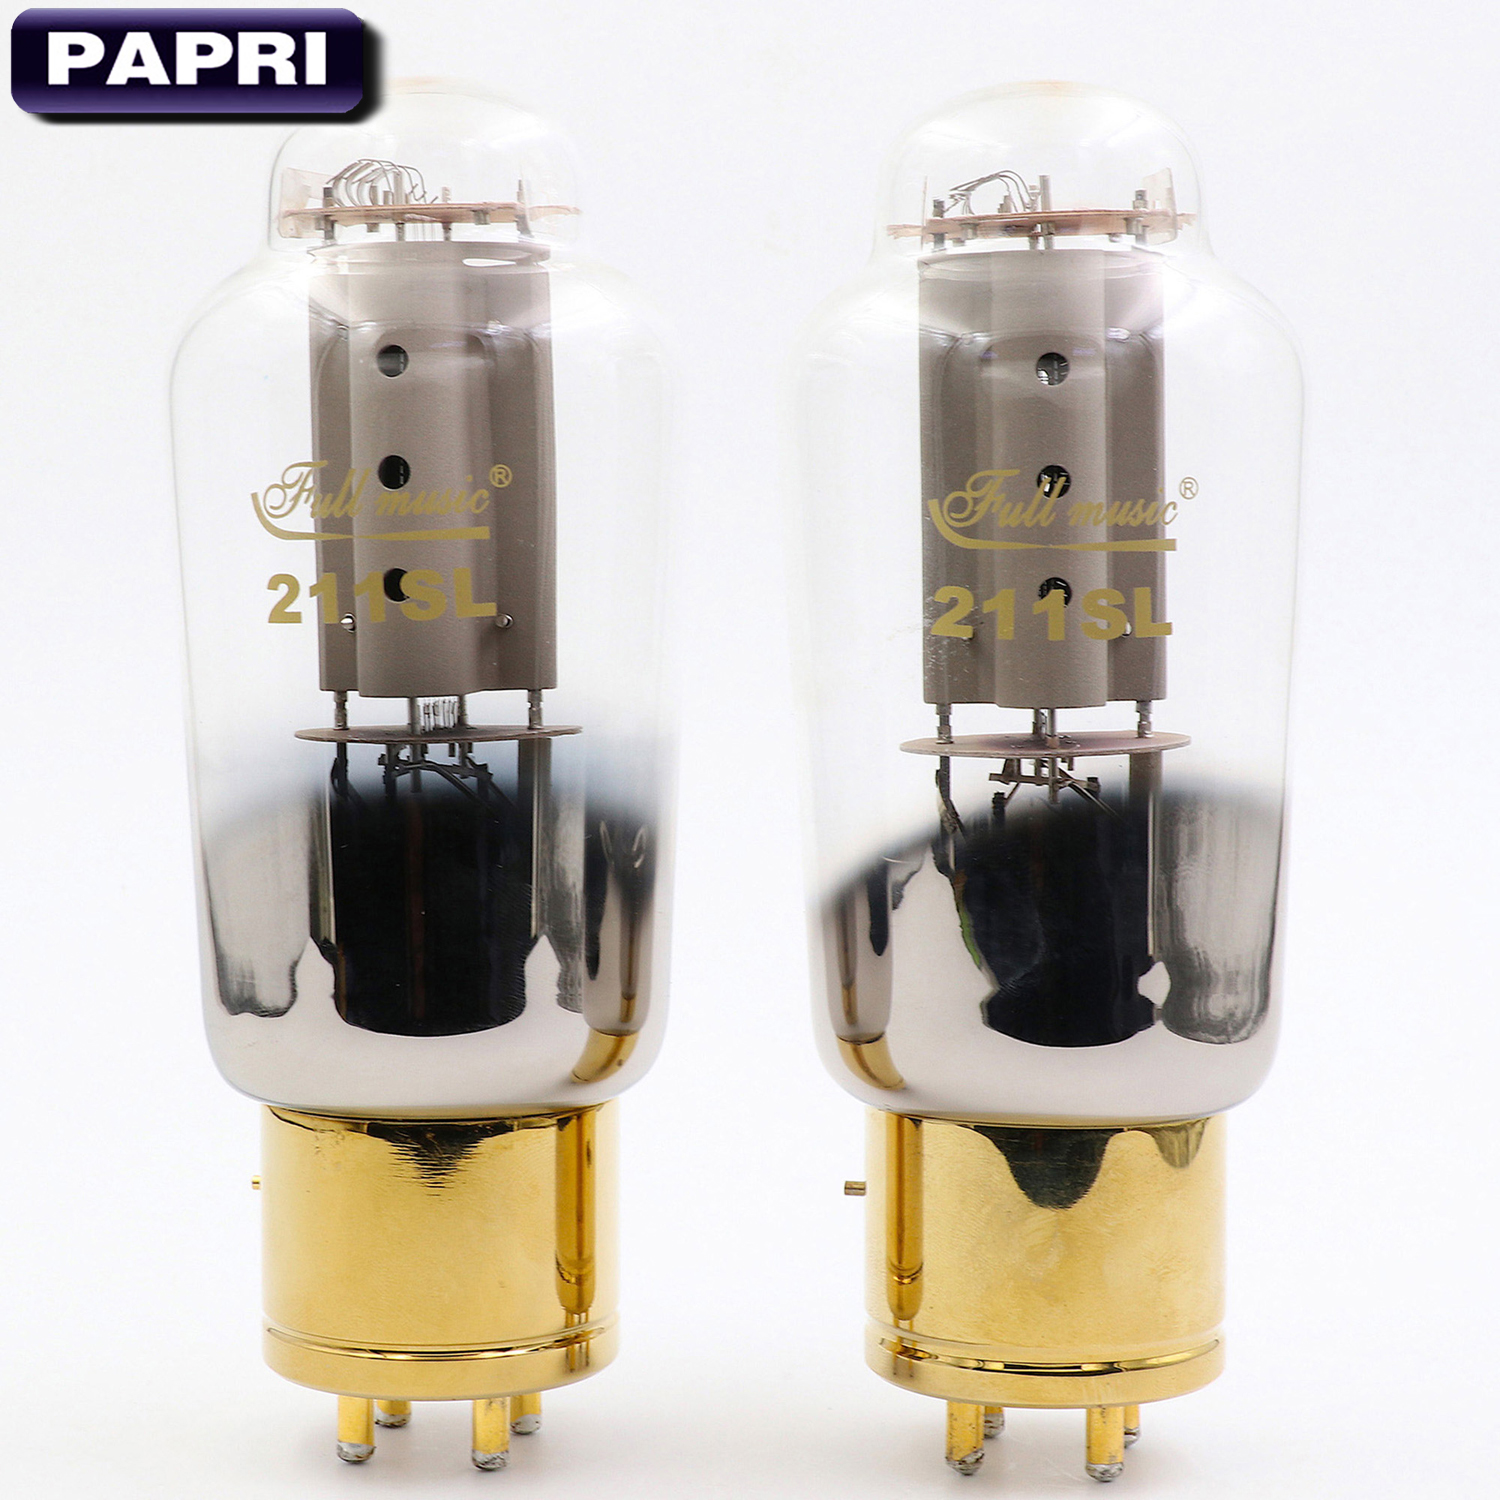 New TJ Fullmusic 211SL Vacuum Tube Vintage Replace 211 Tube For DIY HiFi Amplifier Audio Speaker 2PCS/Lot Test Matched Pair brand new matched pair quad tj fullmusic kt88 cne kt88cne vacuum power tube replace kt88 6550 hifi vintage tube audio amp diy